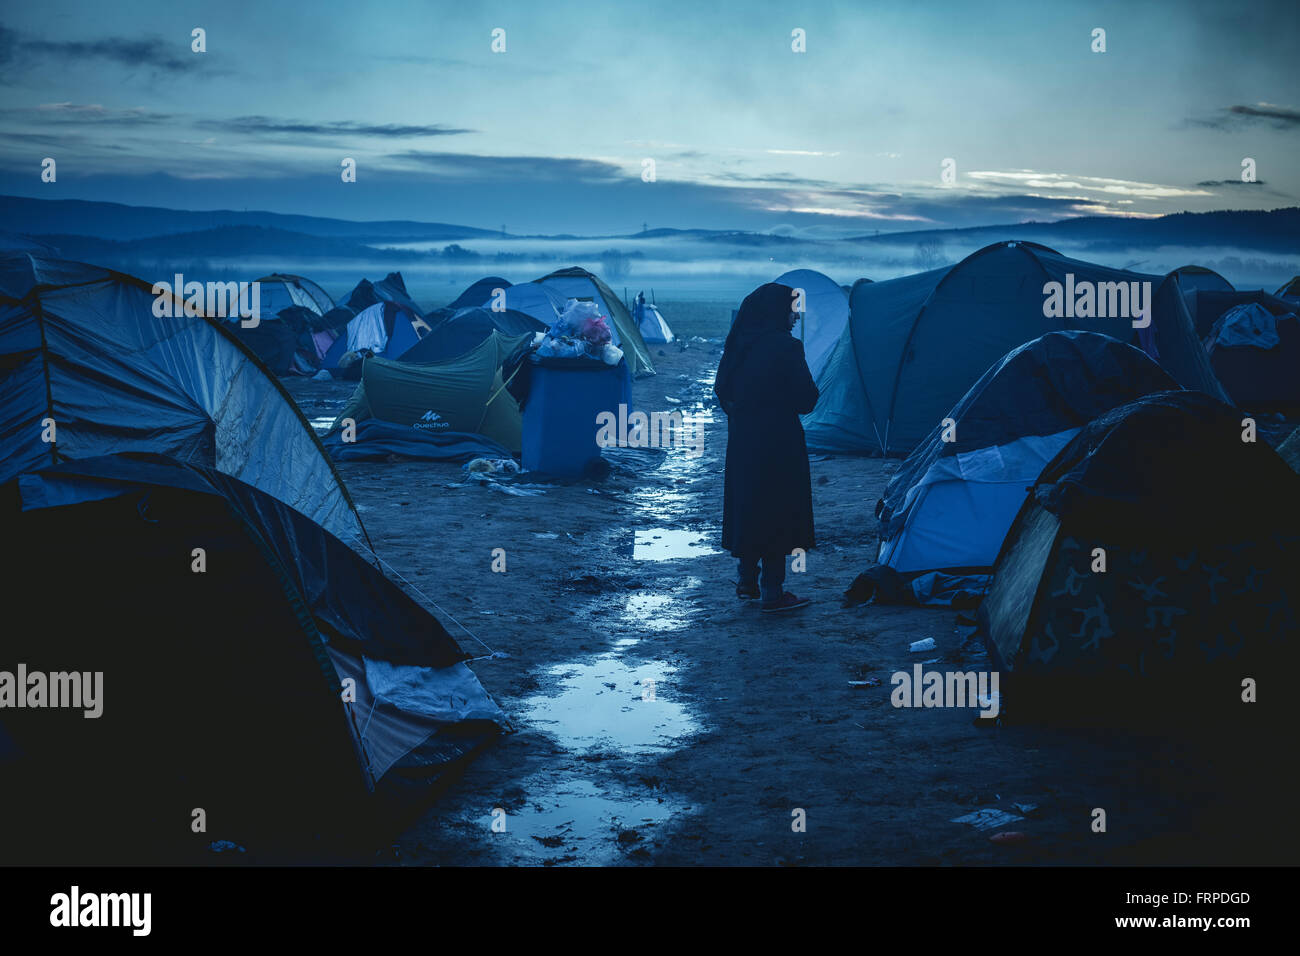 Idomeni refugee camp on the Greece-Macedonia border, camp in the morning after heavy rains, Idomeni, Central Macedonia, - Stock Image